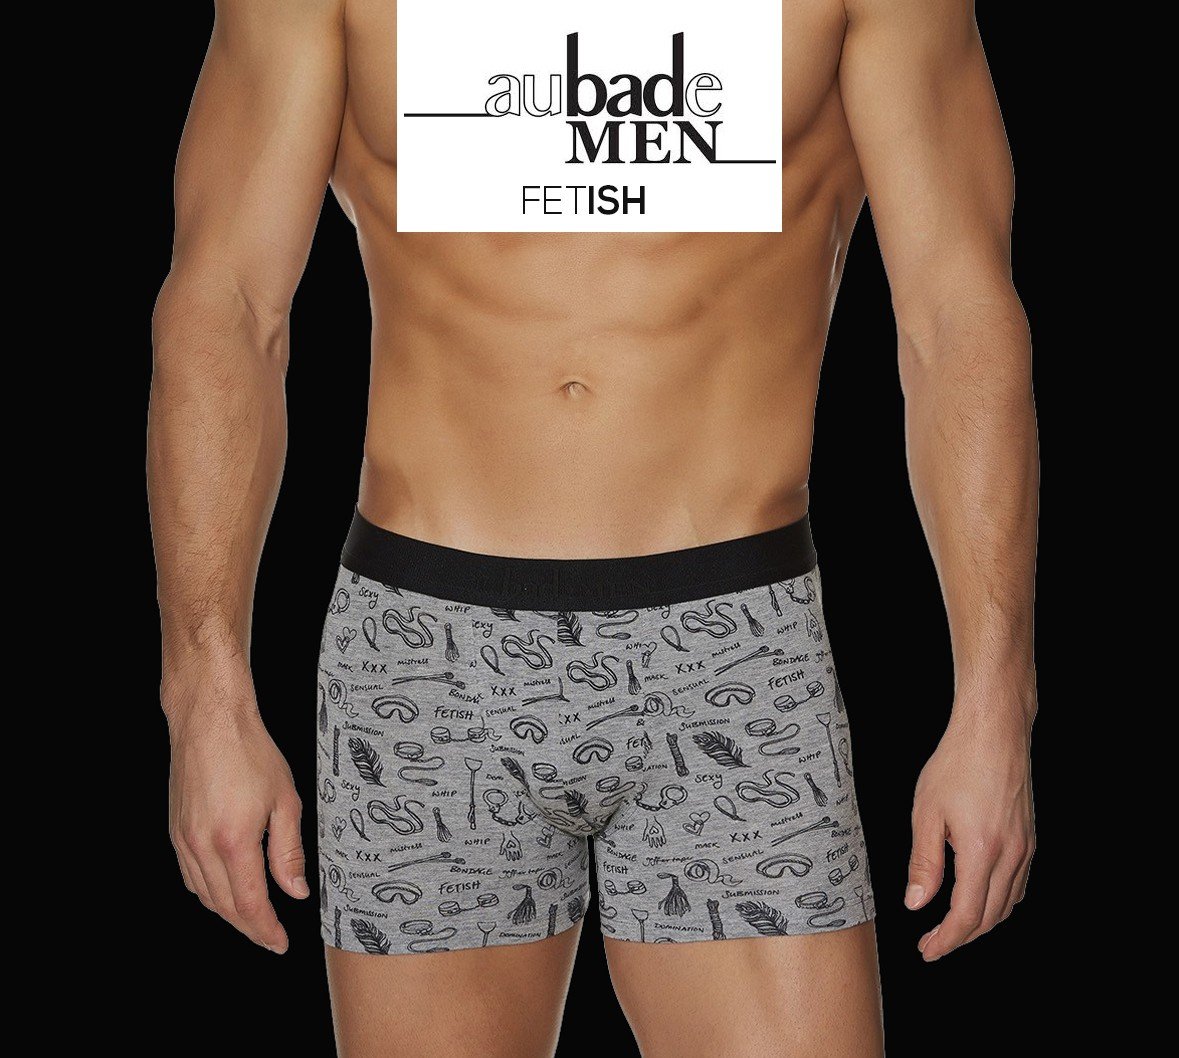 Boxer Fetish, Aubade Men XB73M man autumn winter collection underwear